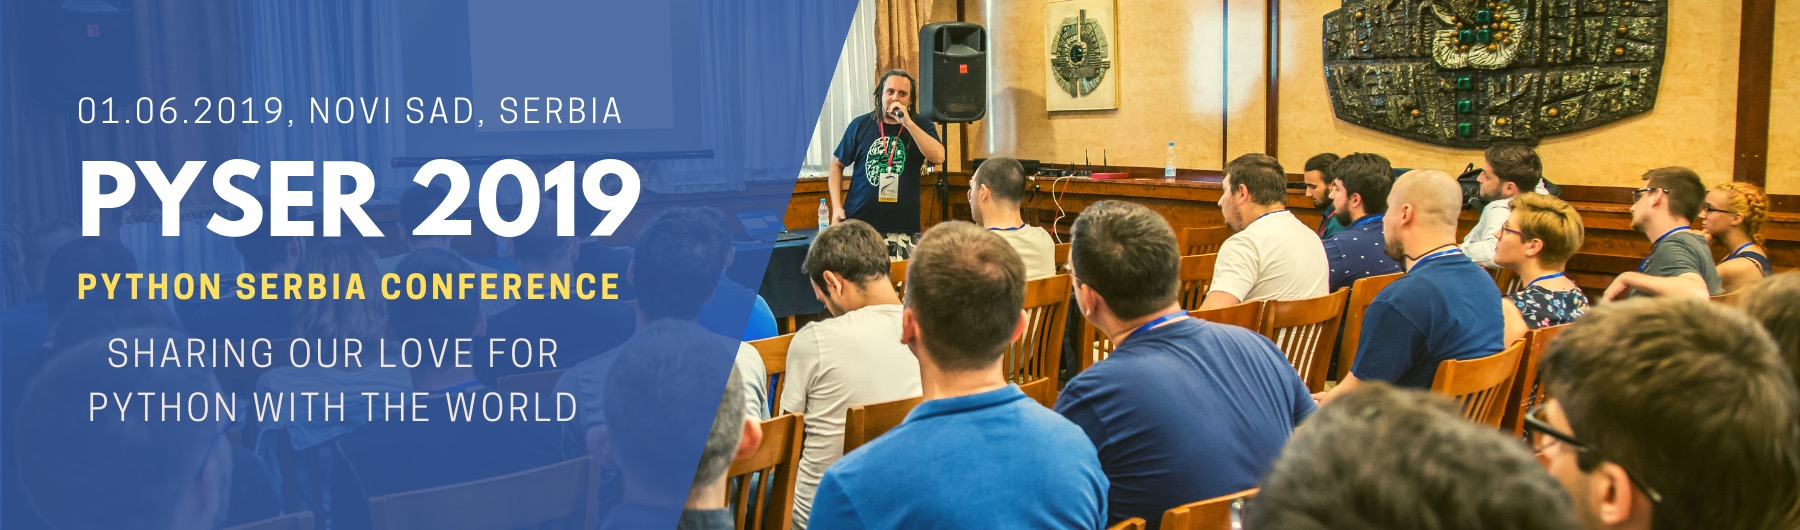 PySer 2019 - Python Serbia Conference